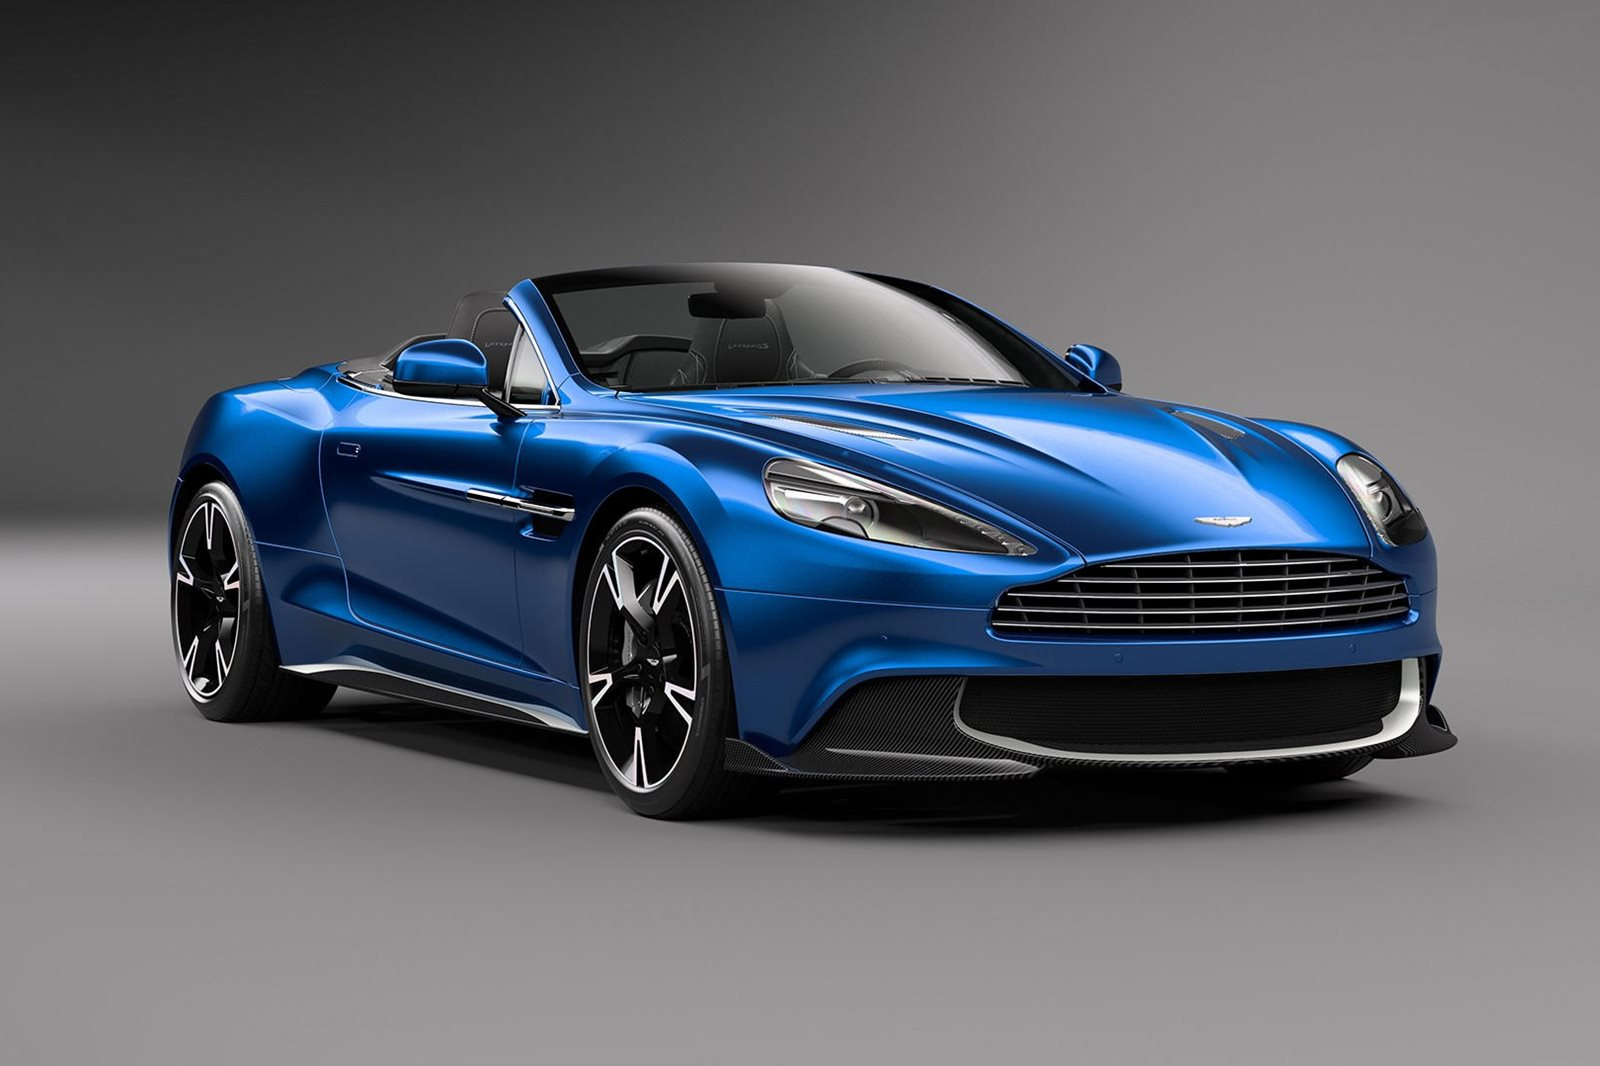 Aston Martin Vanquish S Volante Review Trims Specs And Price - Old aston martin vanquish